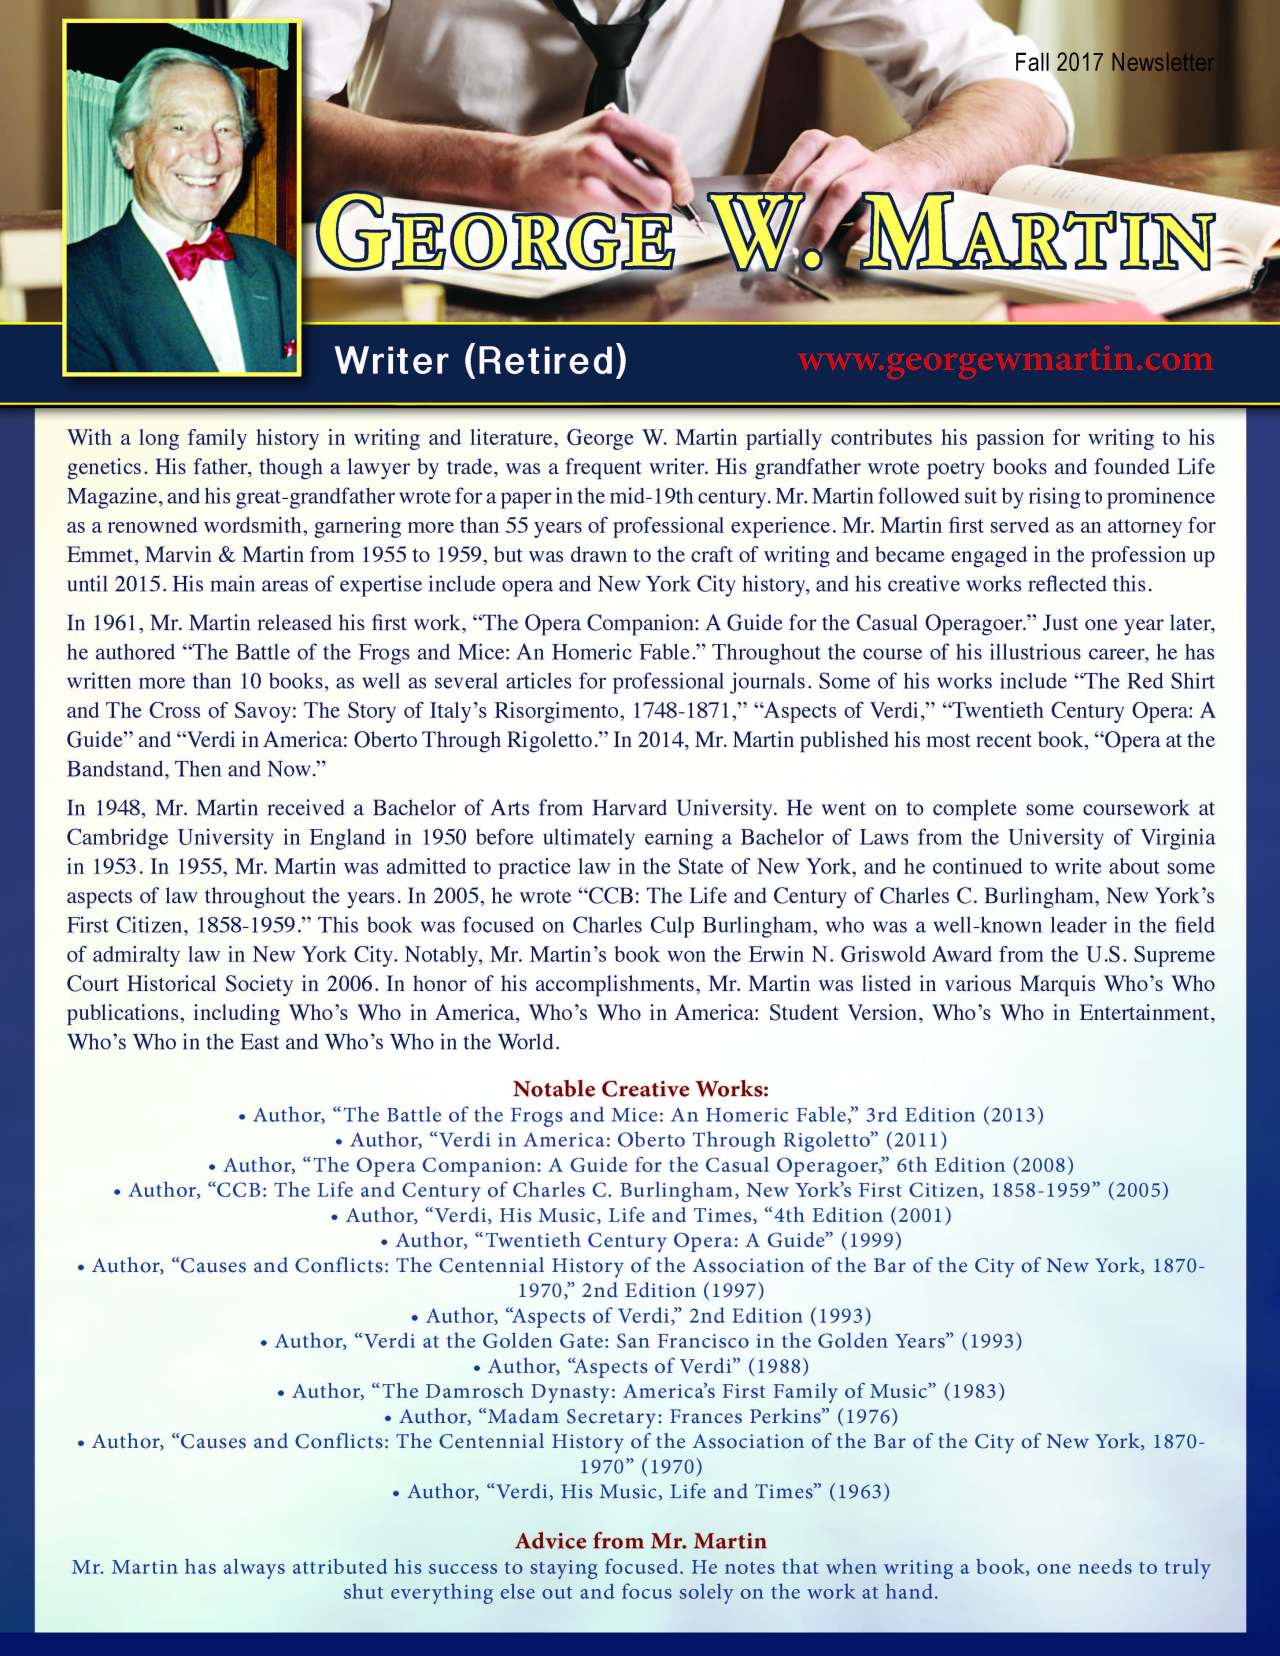 Martin, George 2164498_2501200 Newsletter.jpg